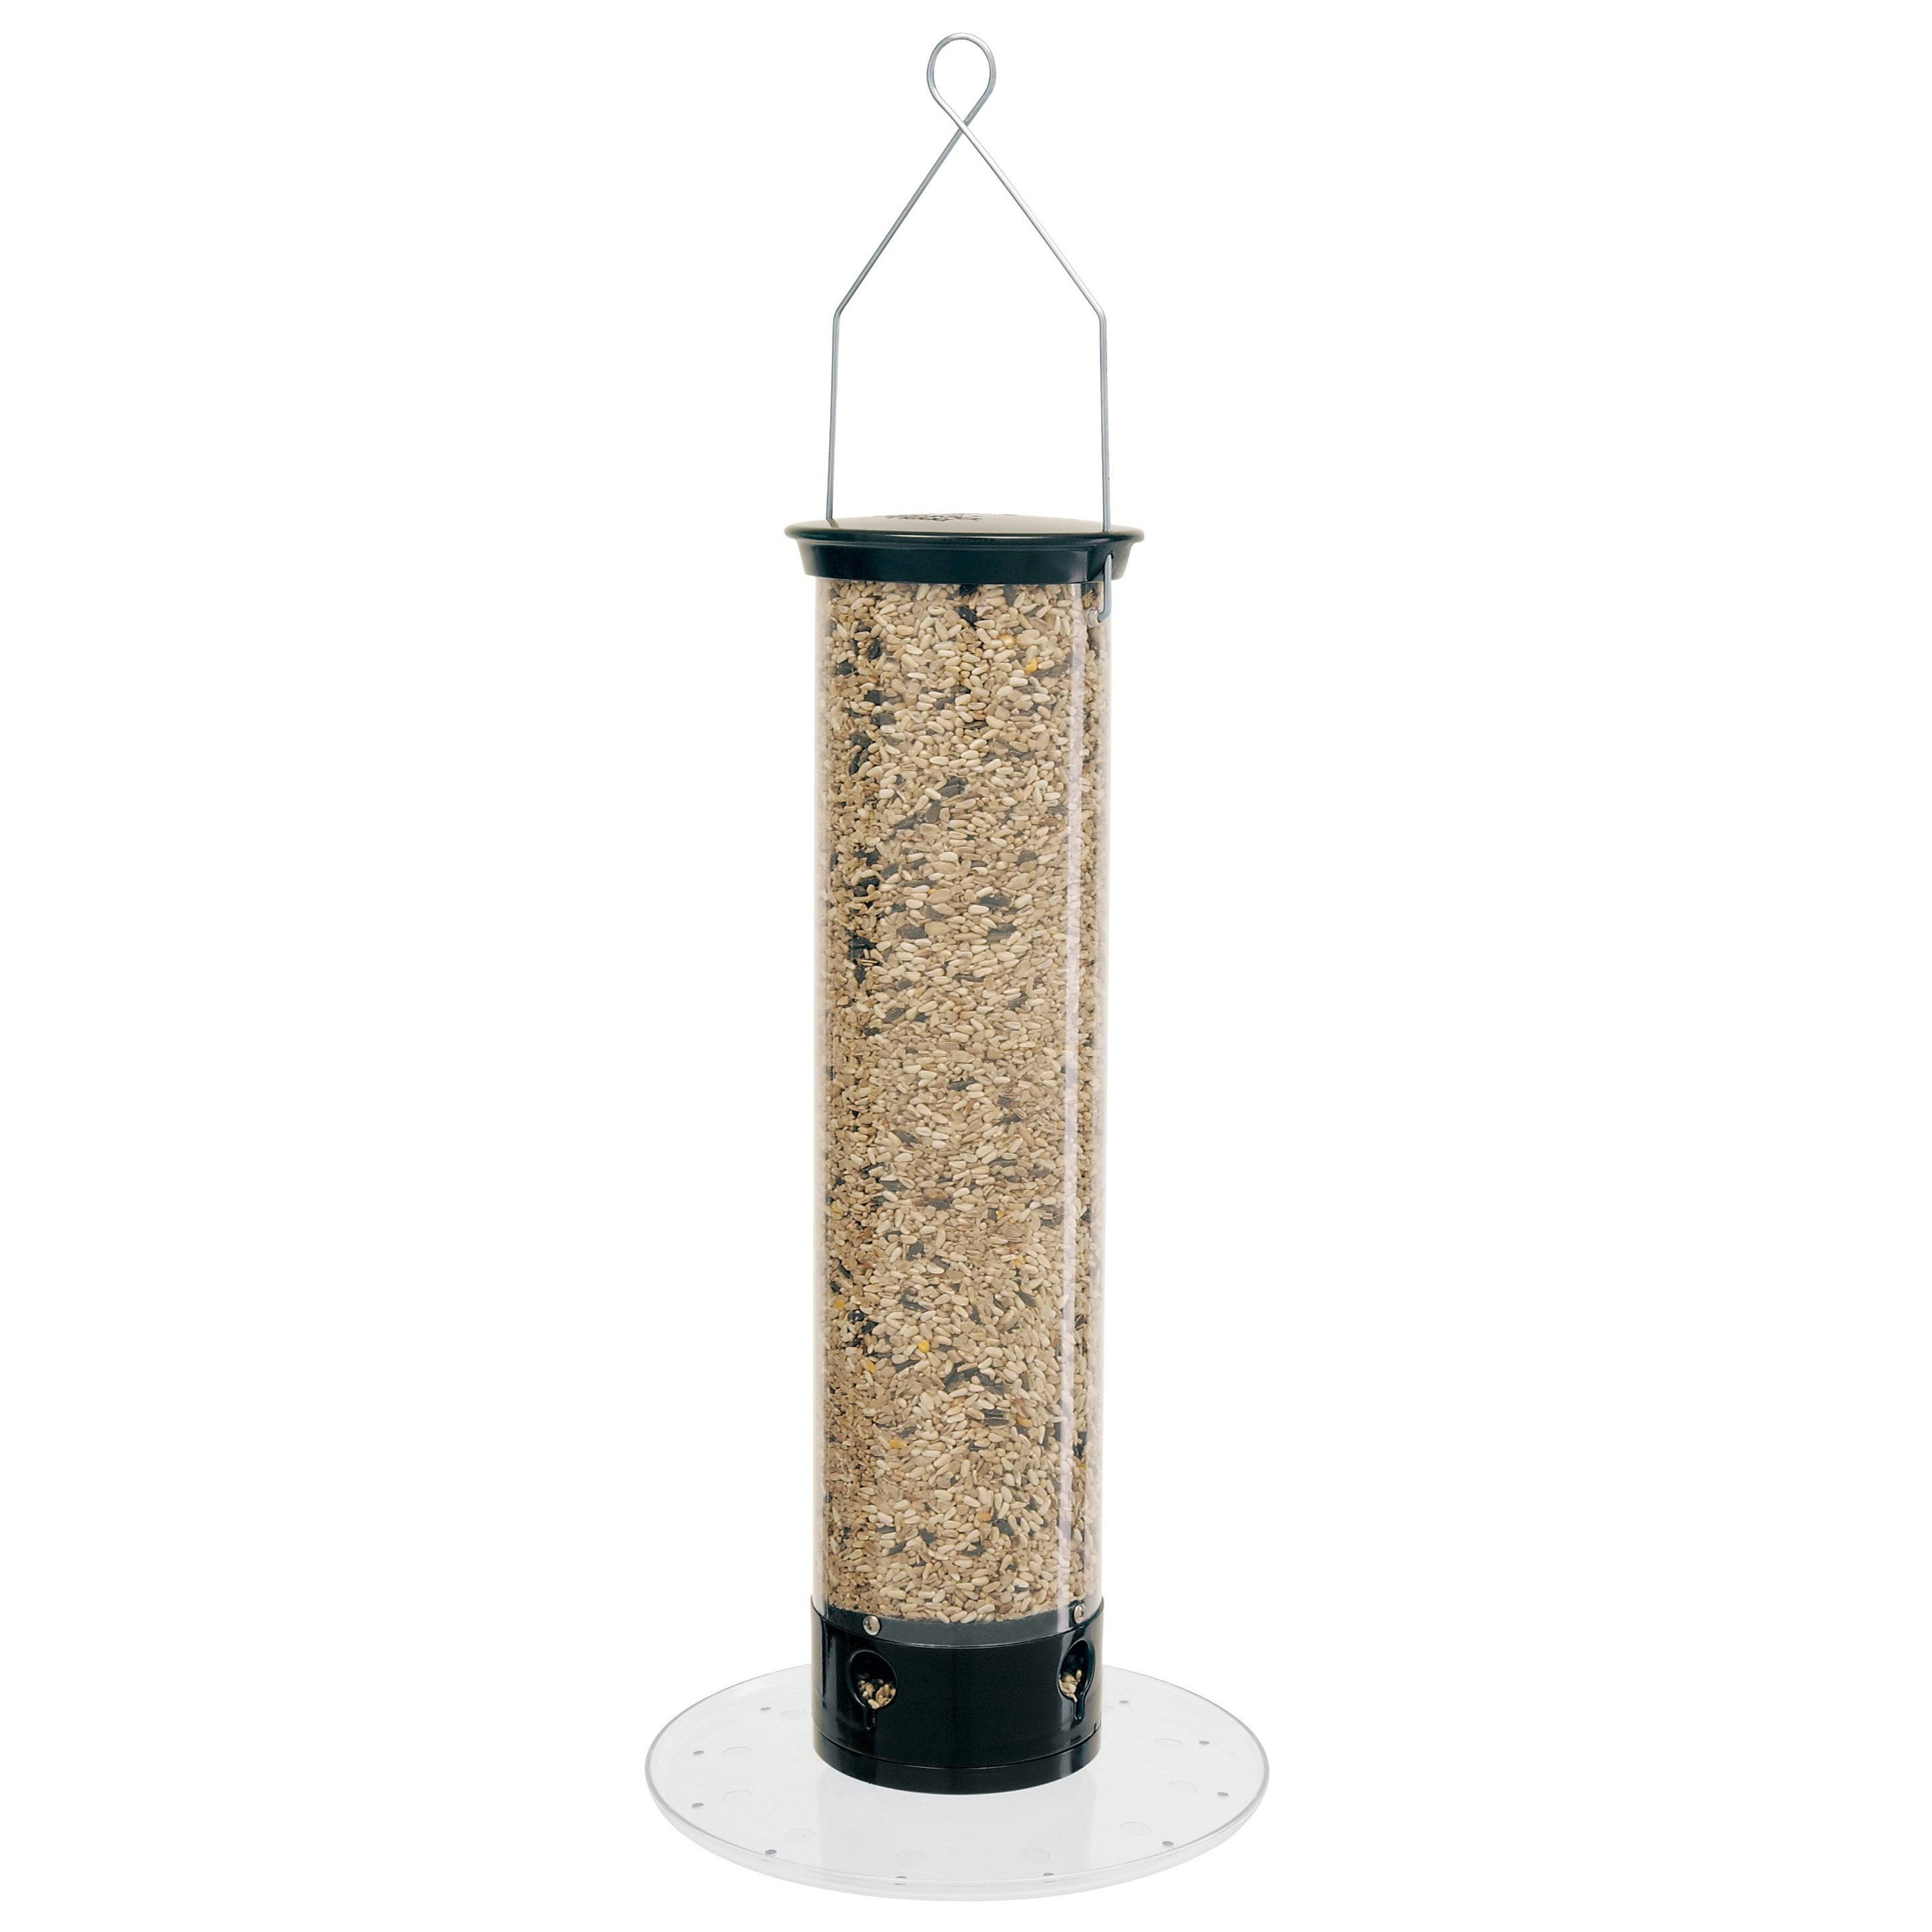 Droll Yankees 4 Port Hanging Bird Feeder